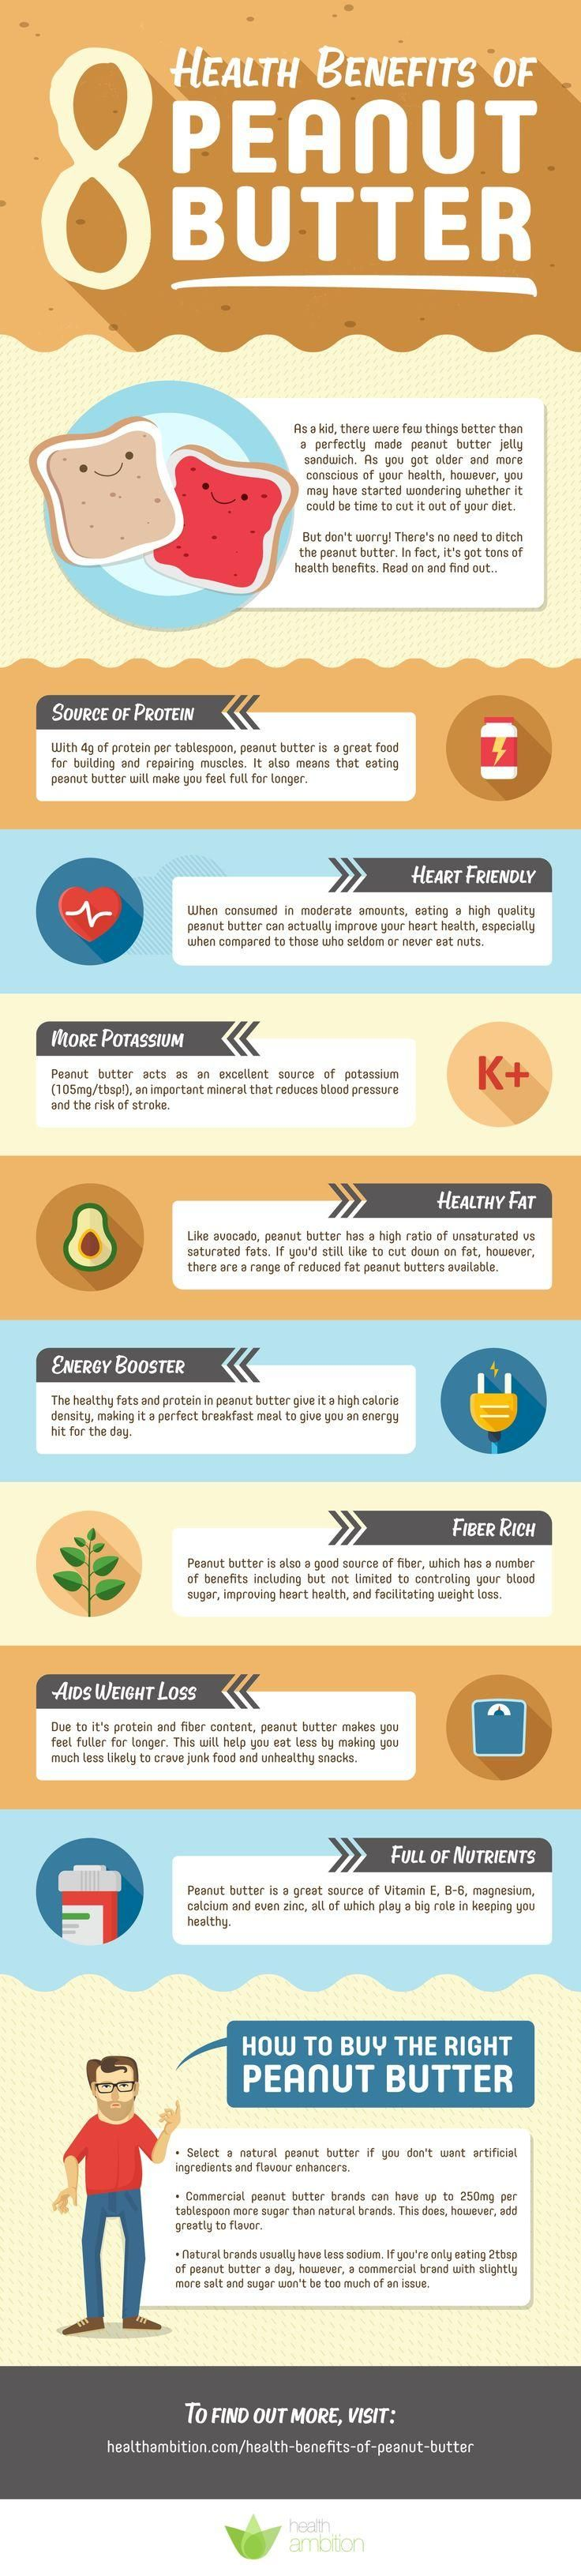 8 Health Benefits of Peanut Butter - NutriLiving Infographics